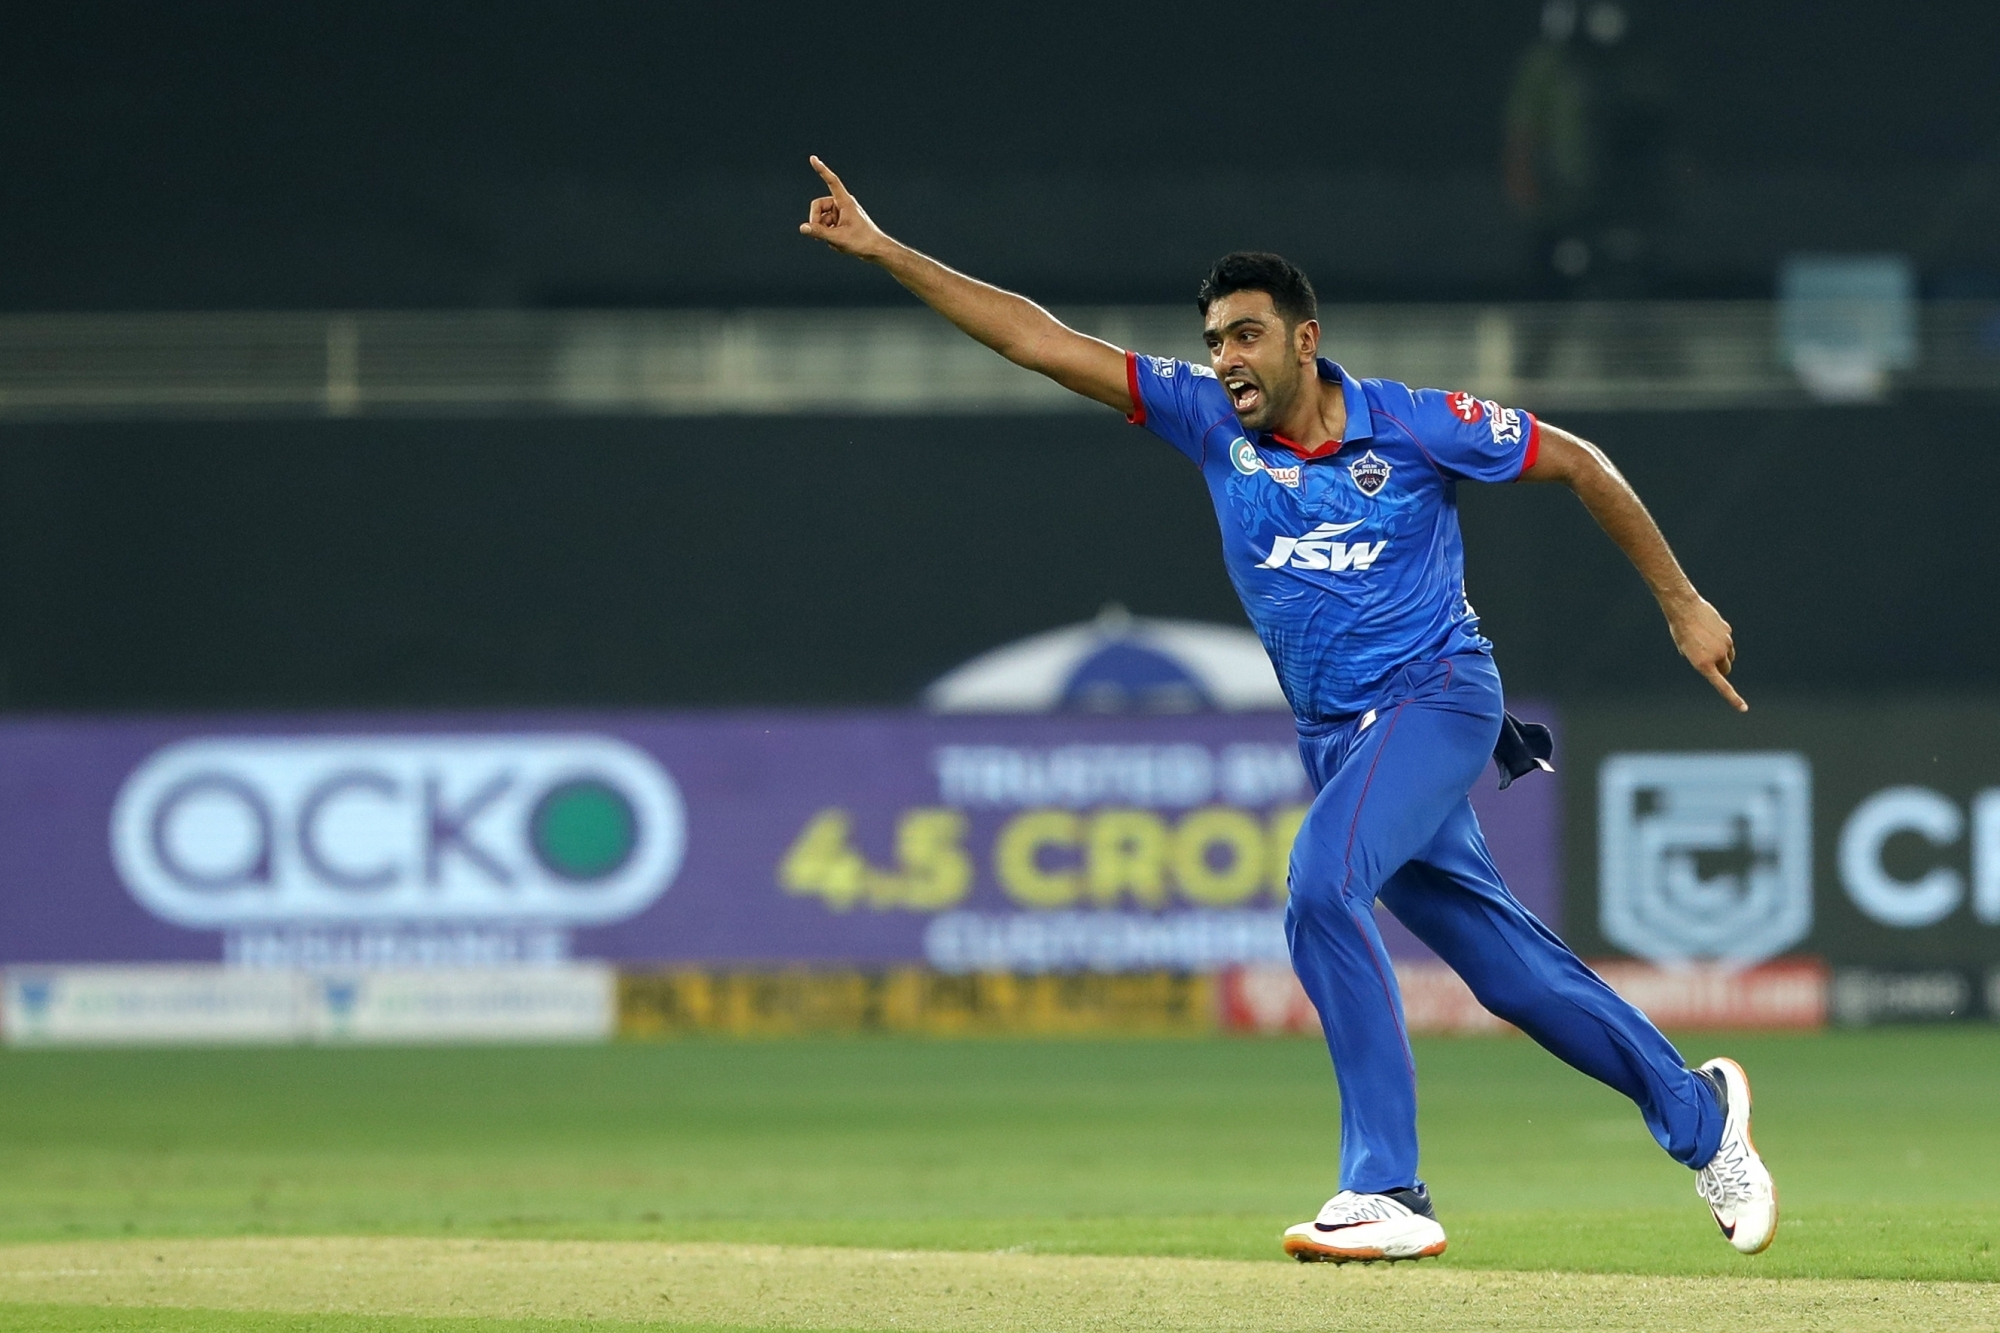 Man of the Match R Ashwin took 2 wickets against RR in Sharjah. (Photo - IANS)